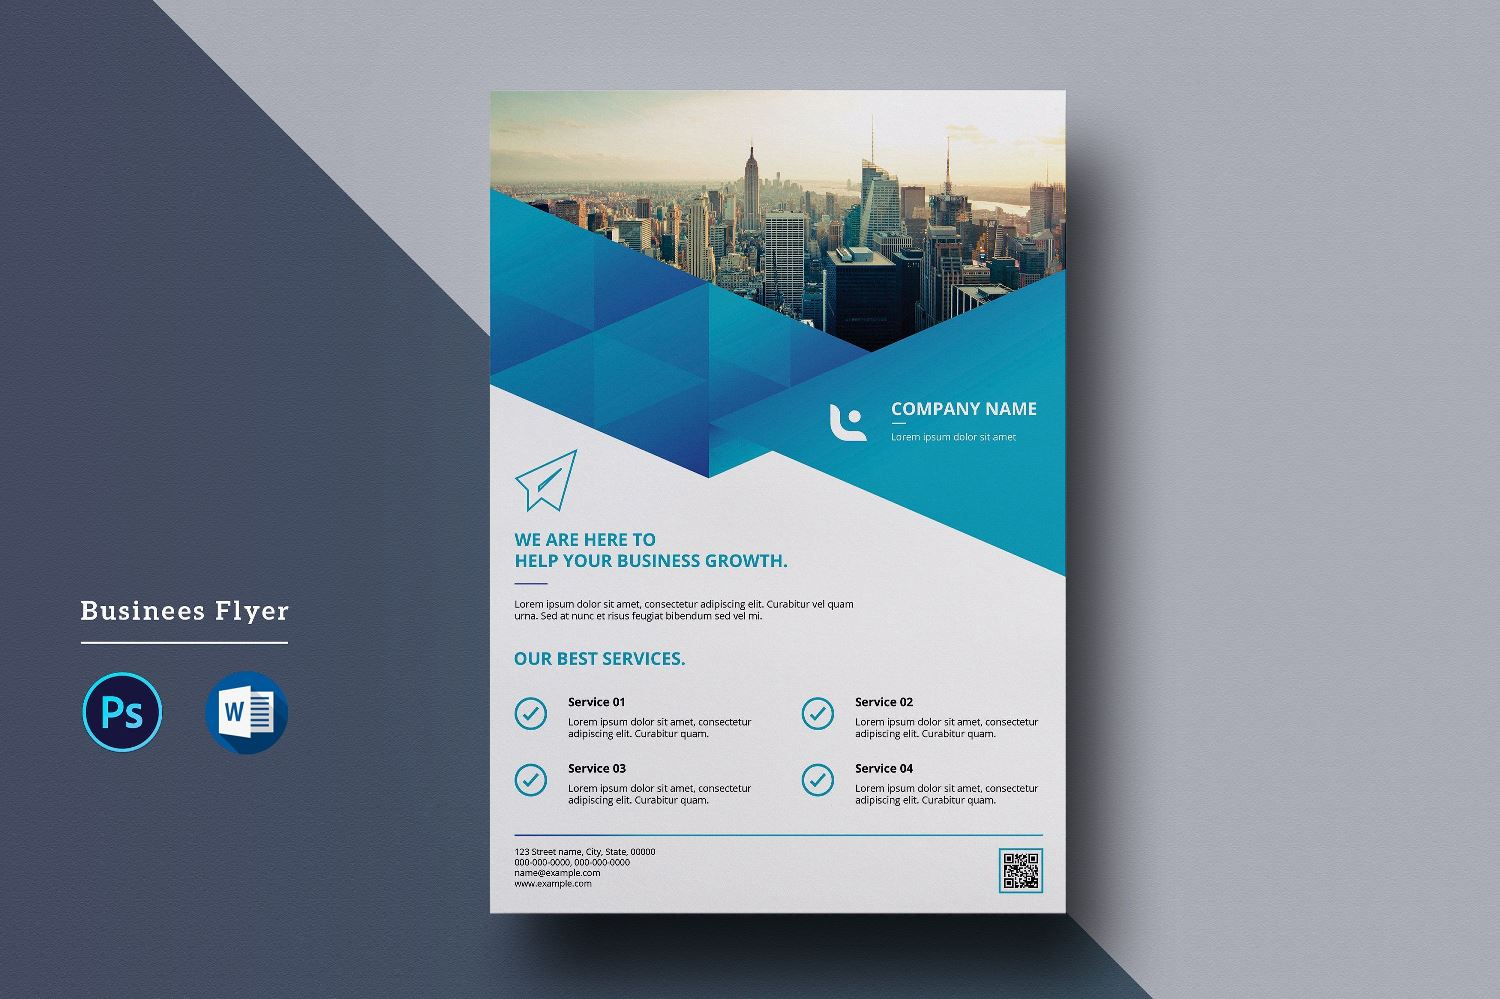 000 Shocking Free Flyer Design Template  Indesign For Word MicrosoftFull